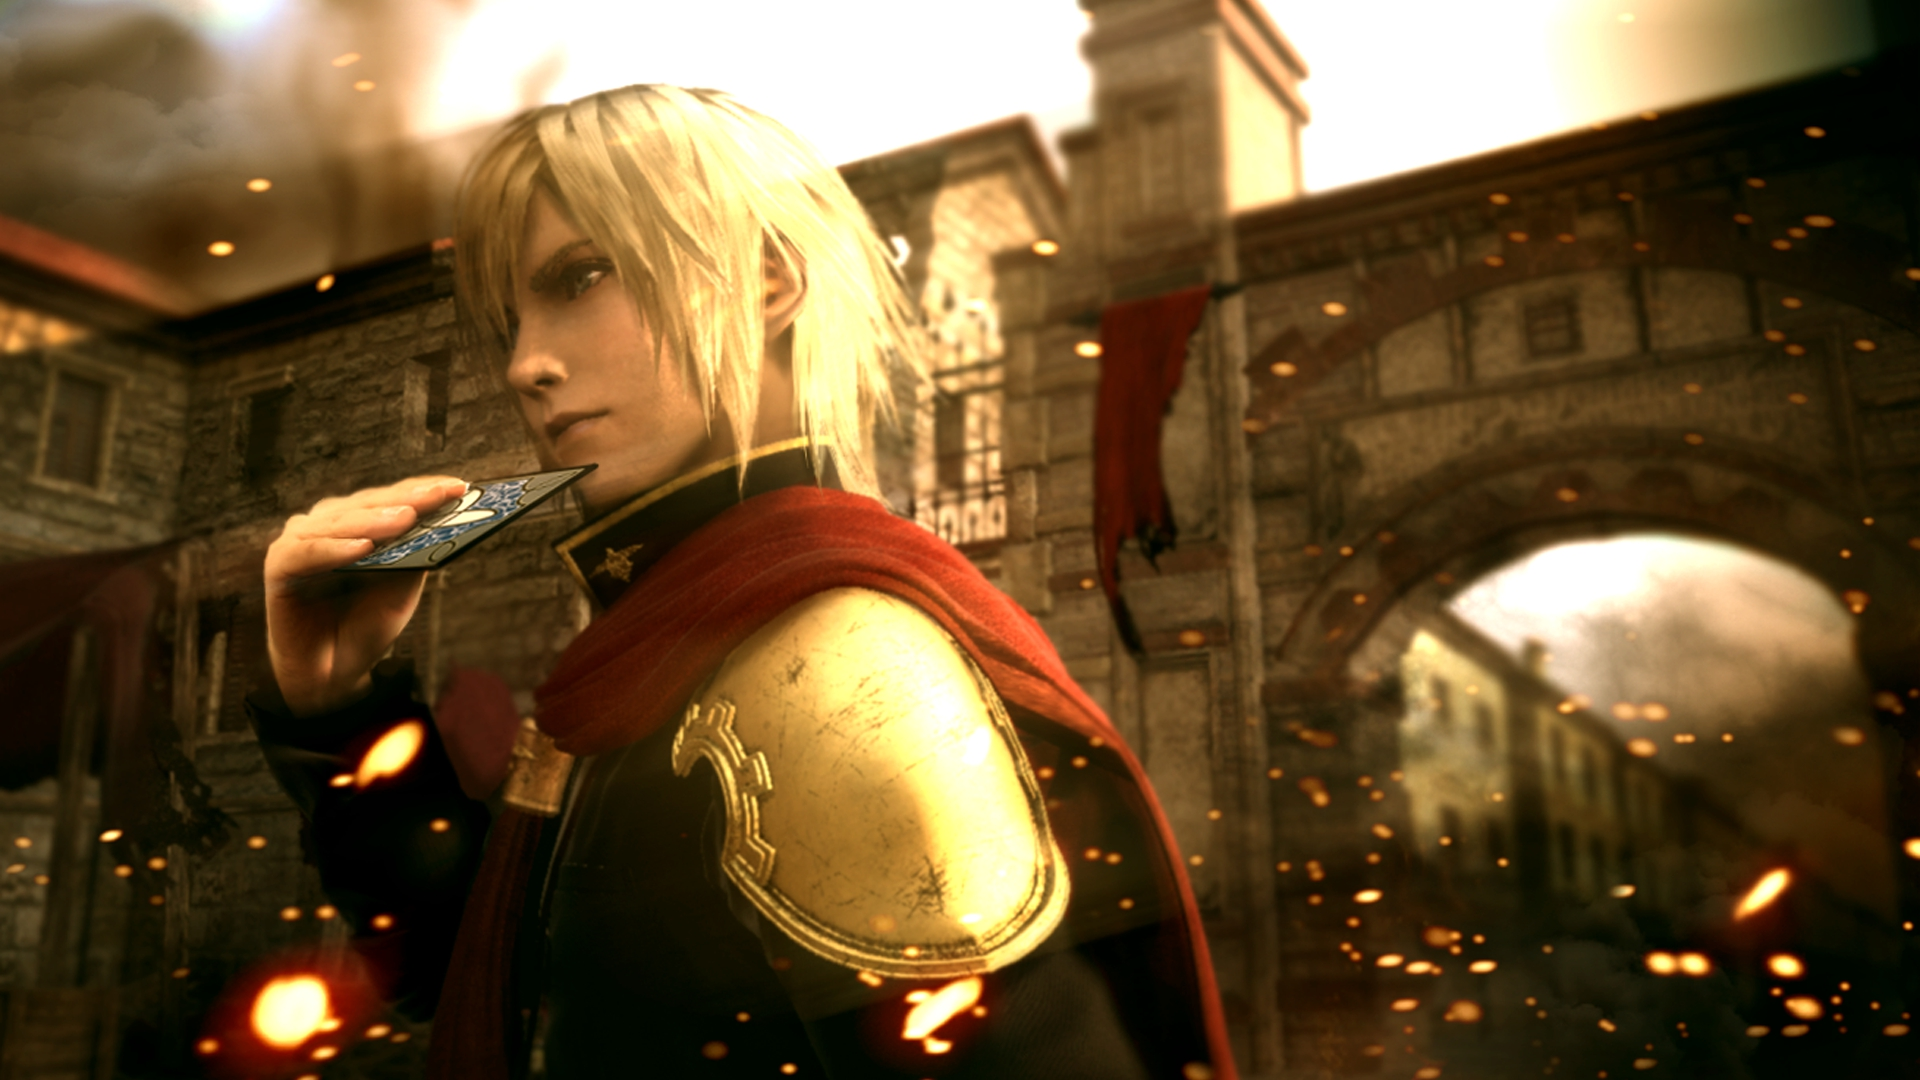 E3 2014] Final Fantasy Type 0 HD announced for PS4 and Xbox One